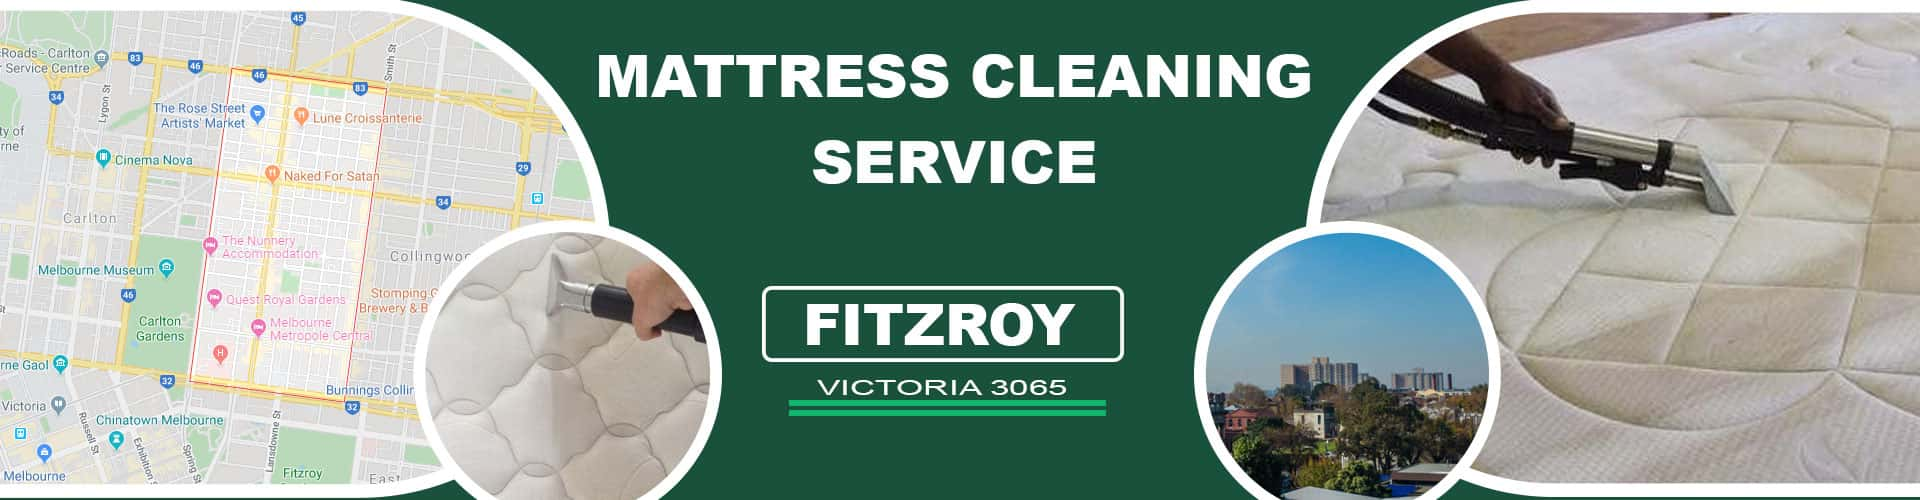 Mattress Cleaning Fitzroy